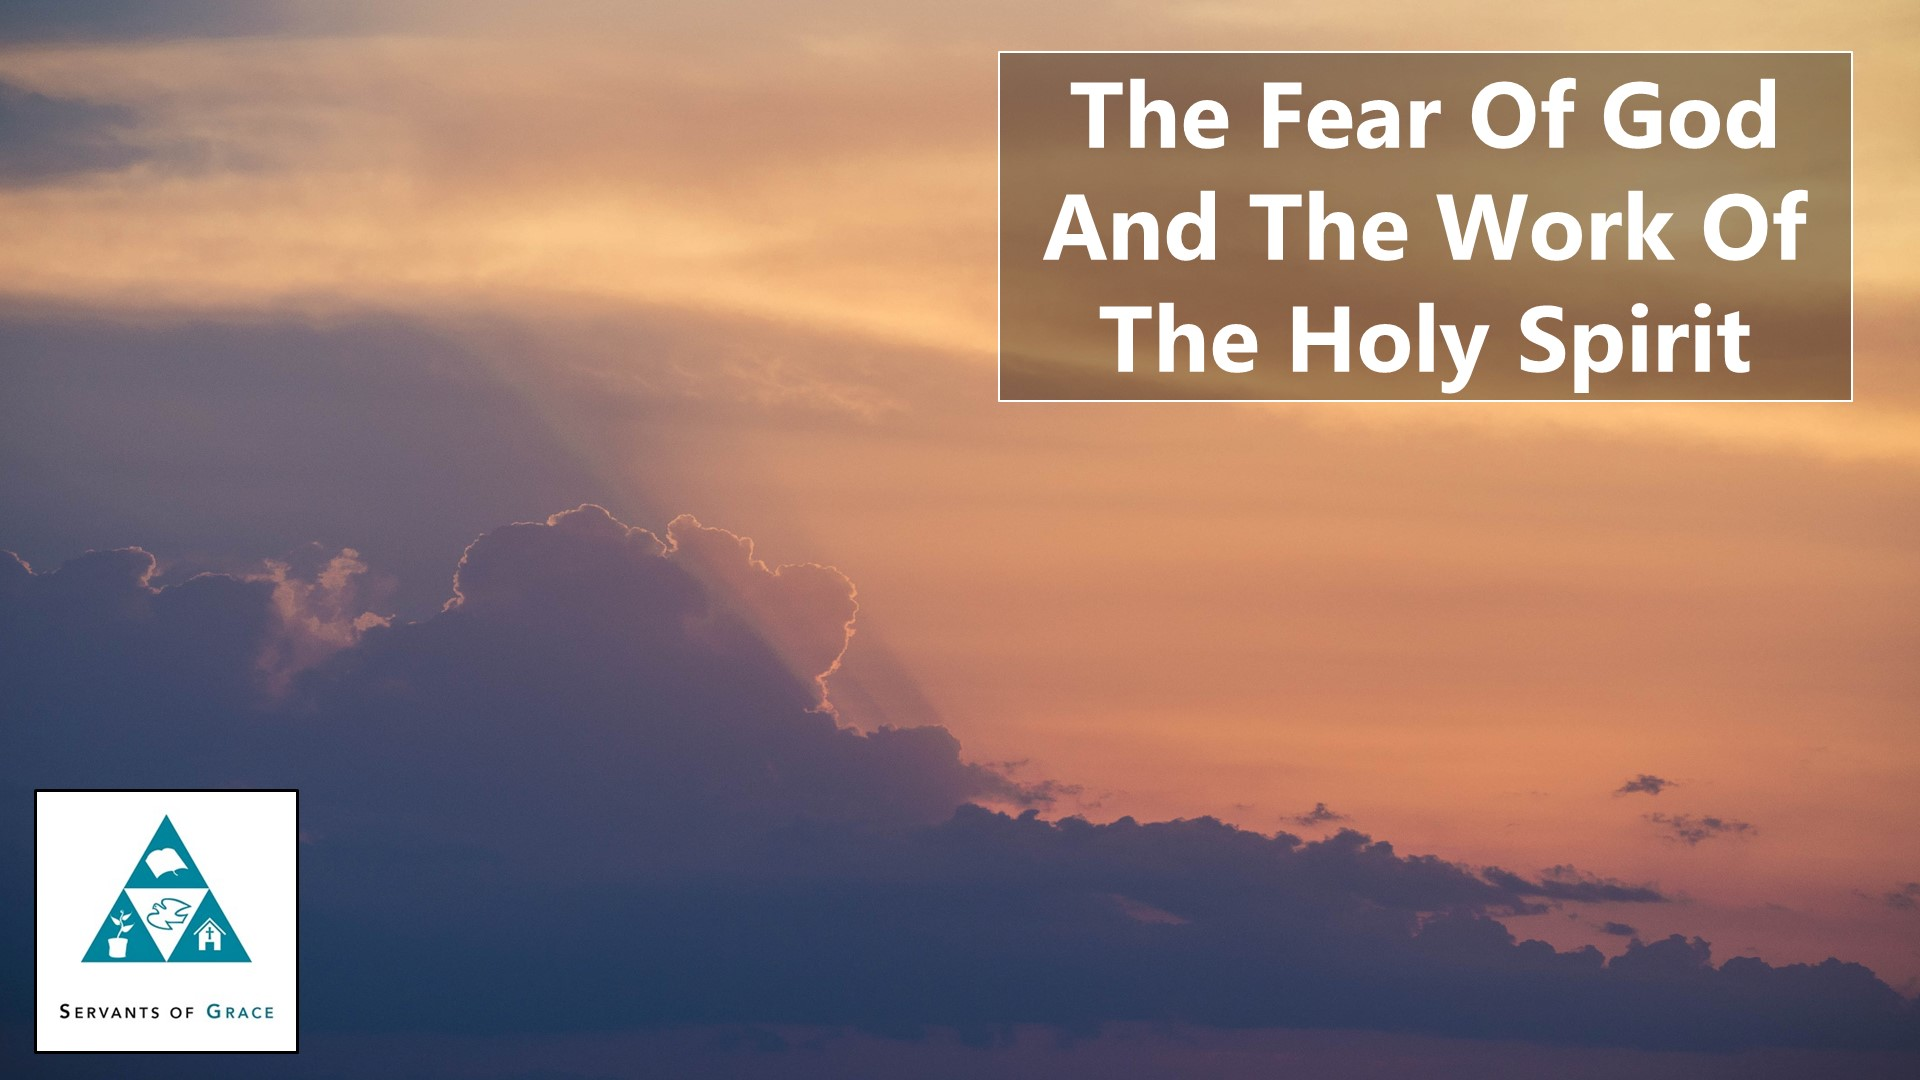 Spirit, The Fear of God and the Work of the Holy Spirit, Servants of Grace, Servants of Grace